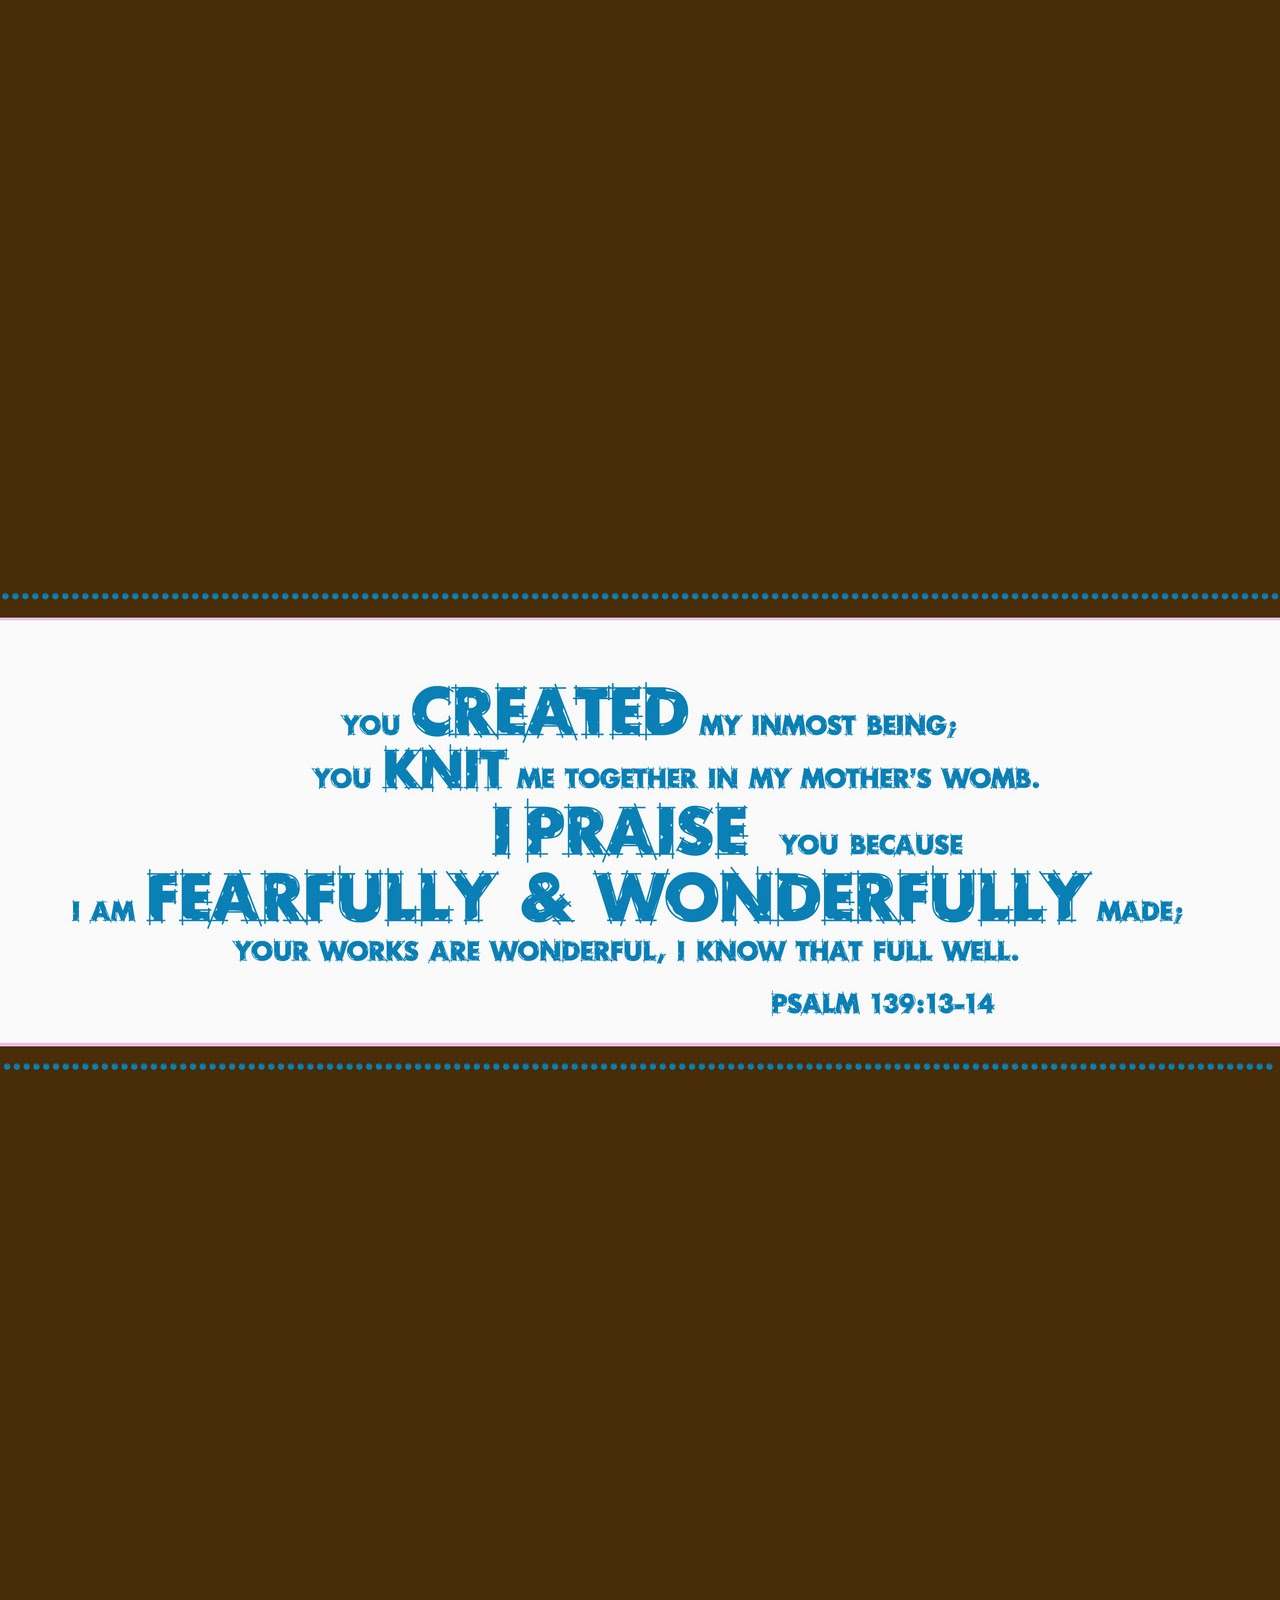 Download image psalm 139 13 14 pc android iphone and ipad